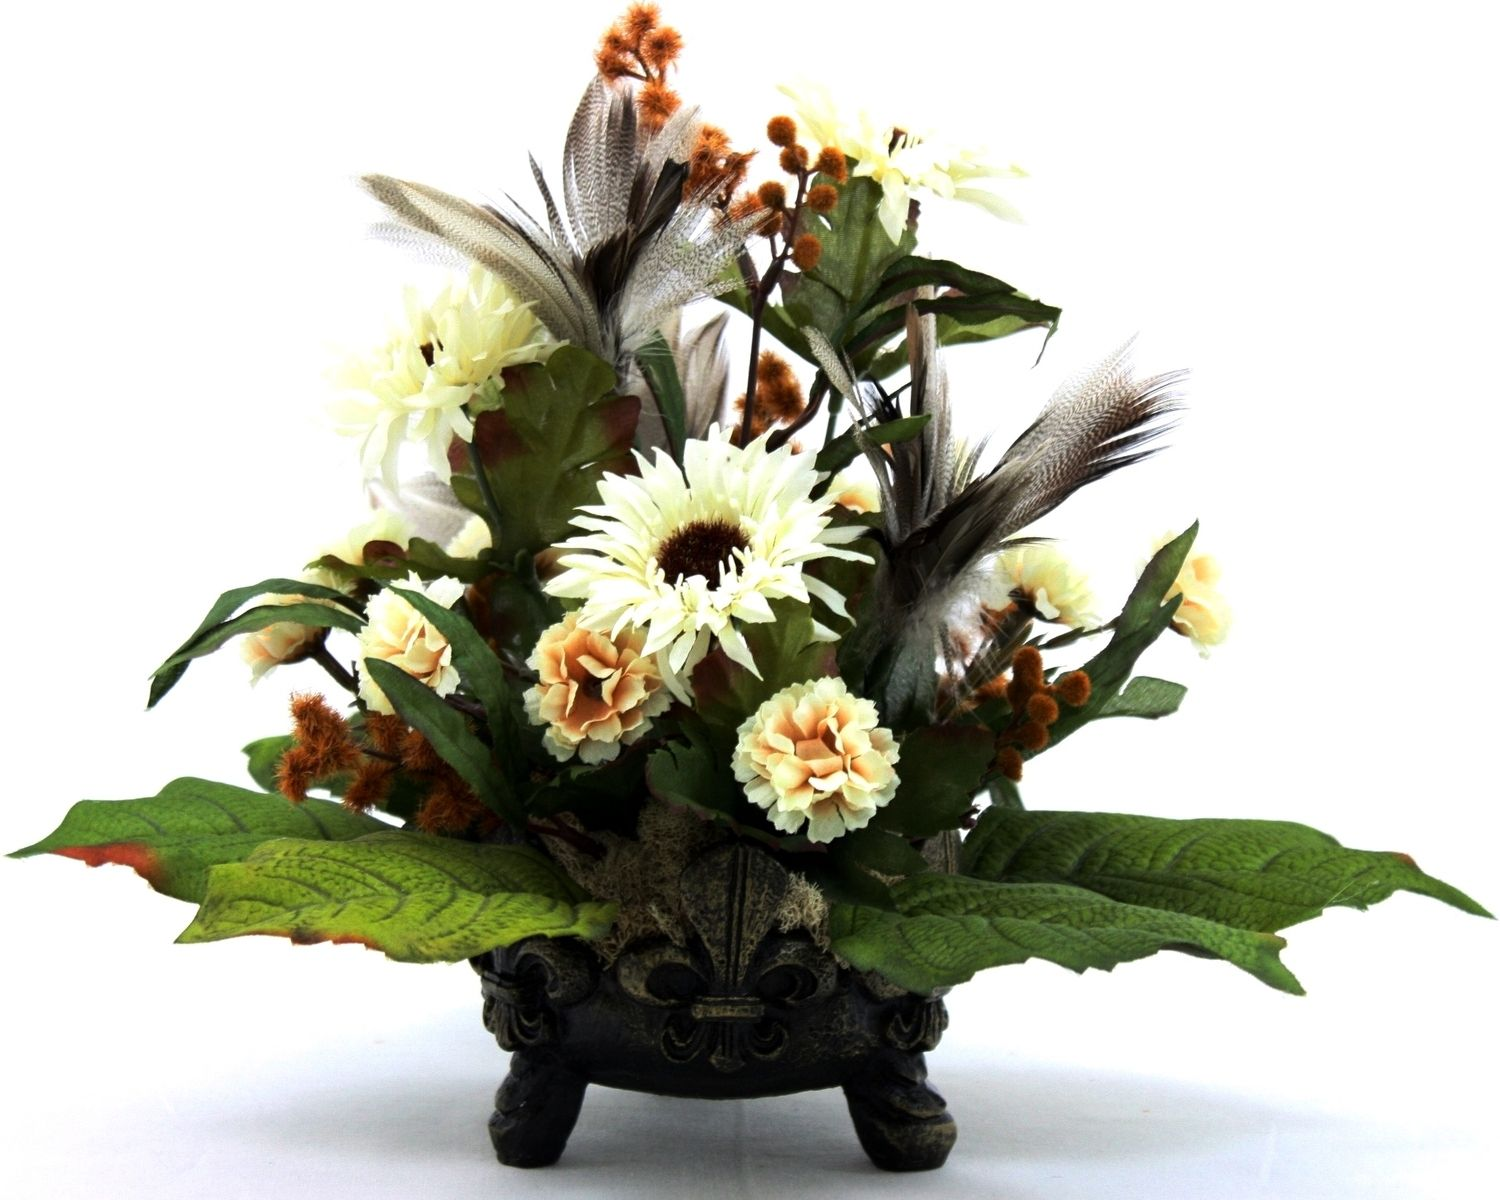 Hand Crafted Unique Silk Flower Arrangement Table Centerpiece, Home ...